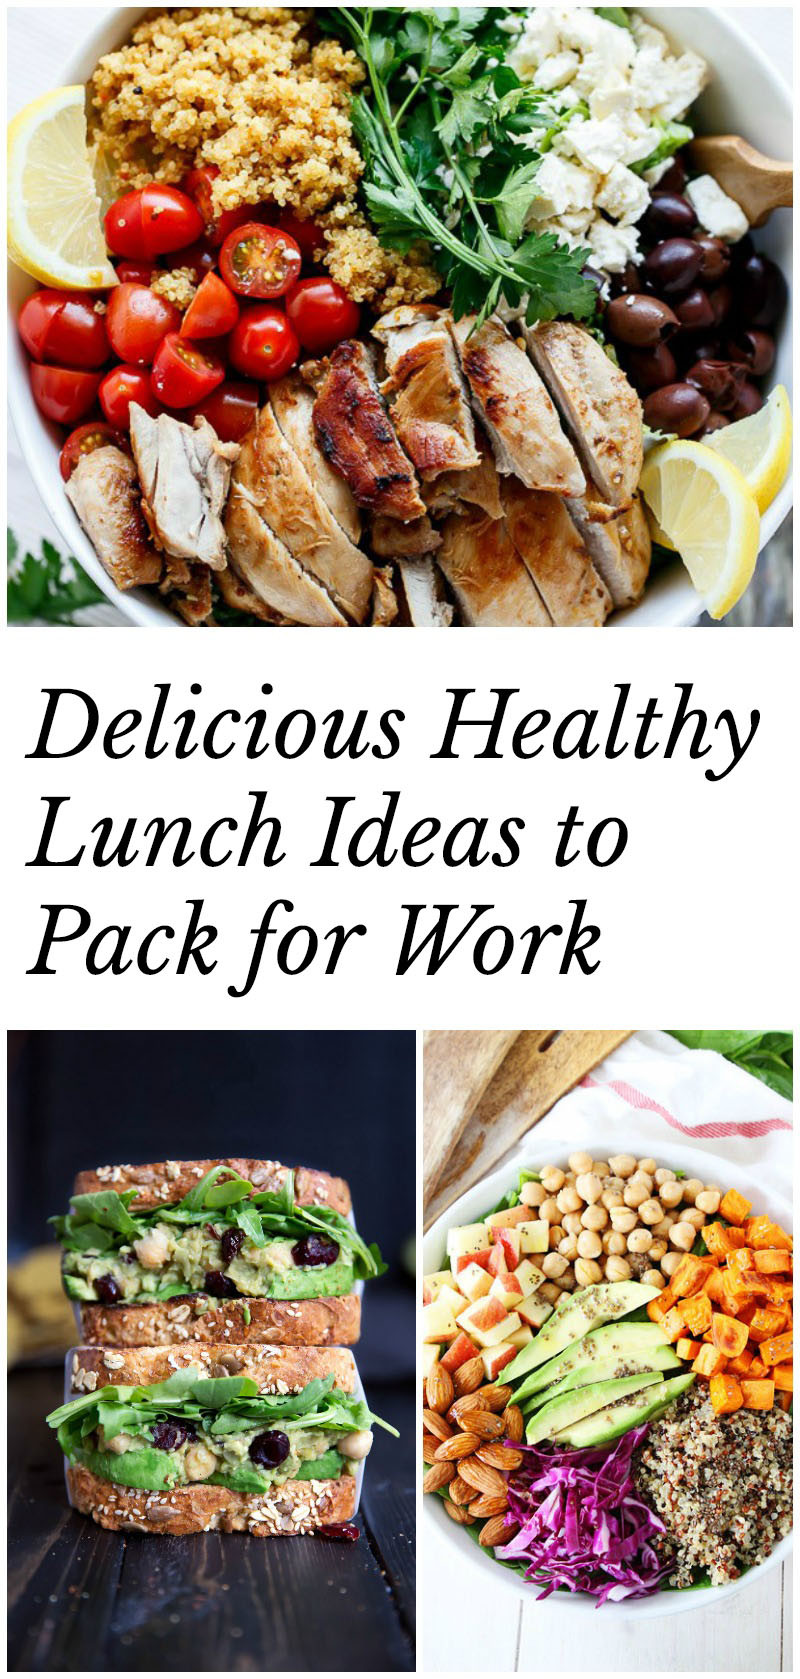 Simple Healthy Lunches For Work  Healthy Lunch Ideas to Pack for Work 40 recipes